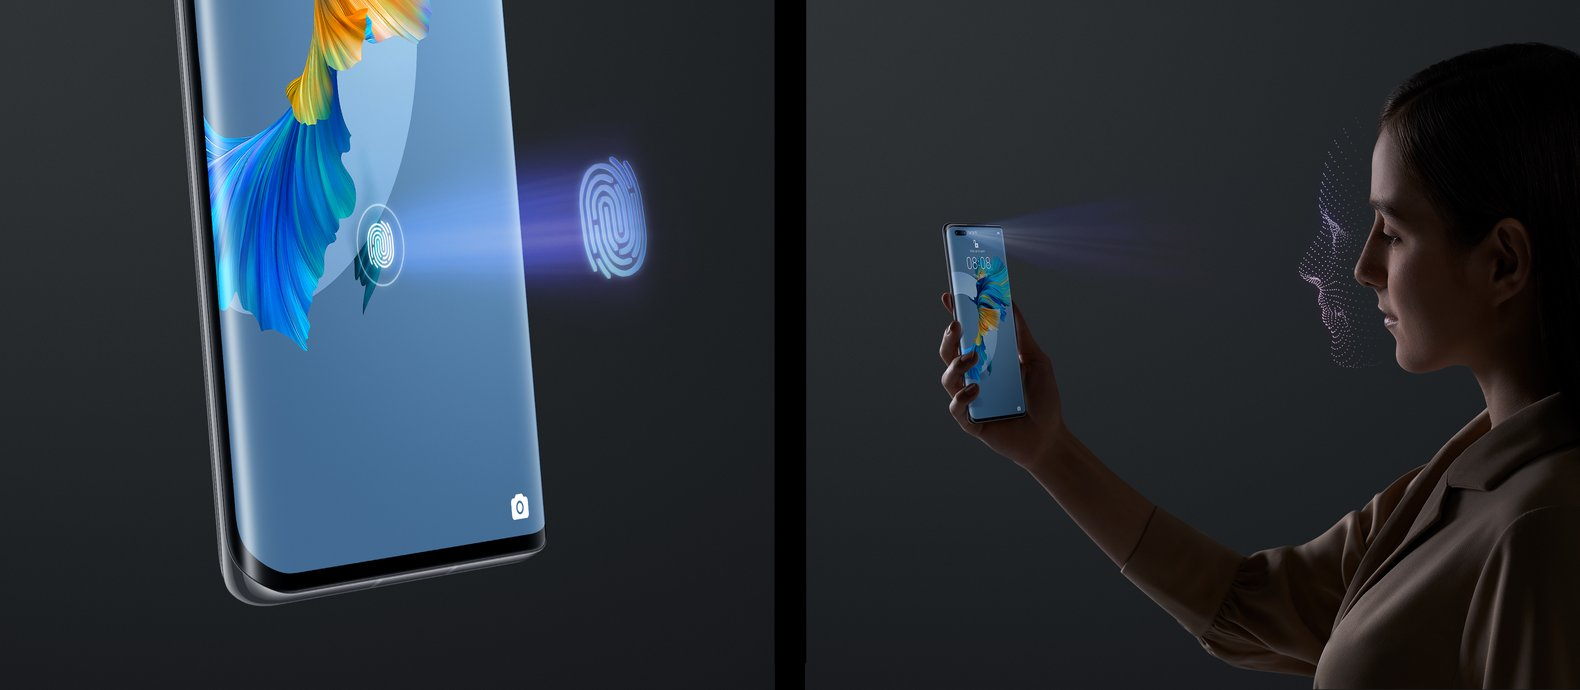 huawei mate 40 pro privacy and security